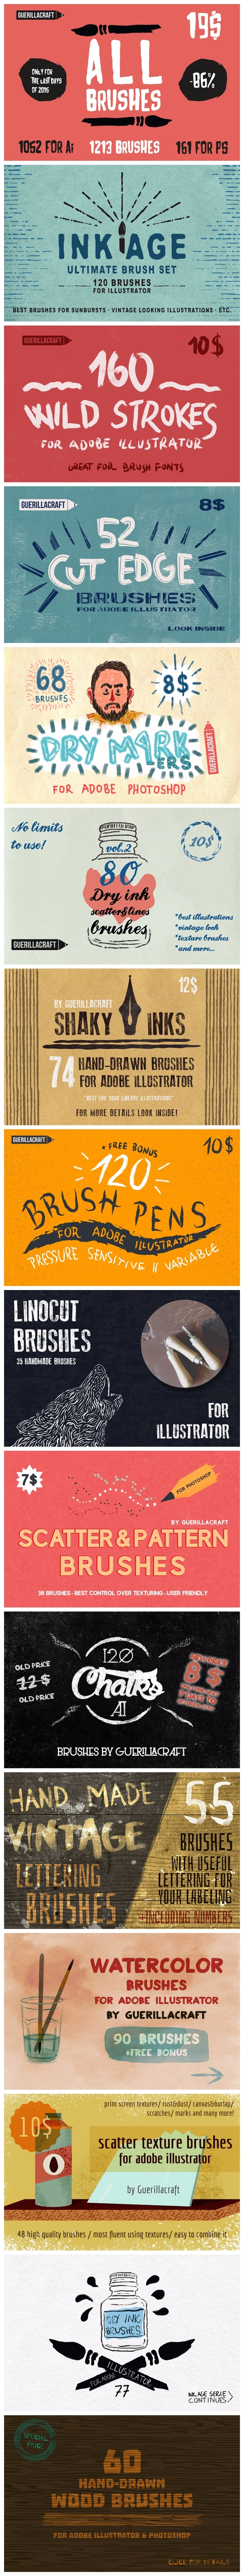 ALL Brushes By Guerillacraft https://creativemarket.com/Guerillacraft/478297-ALL-Brushes-By-Guerillacraft?u=MeeraG | #brushes #adobe #illustrator #brushes #adobephotoshopbrushes #ink #brush #dry #ink #chalk #watercolor #pen #pencil #confetti #sale #vintage #illustration #calligraphy